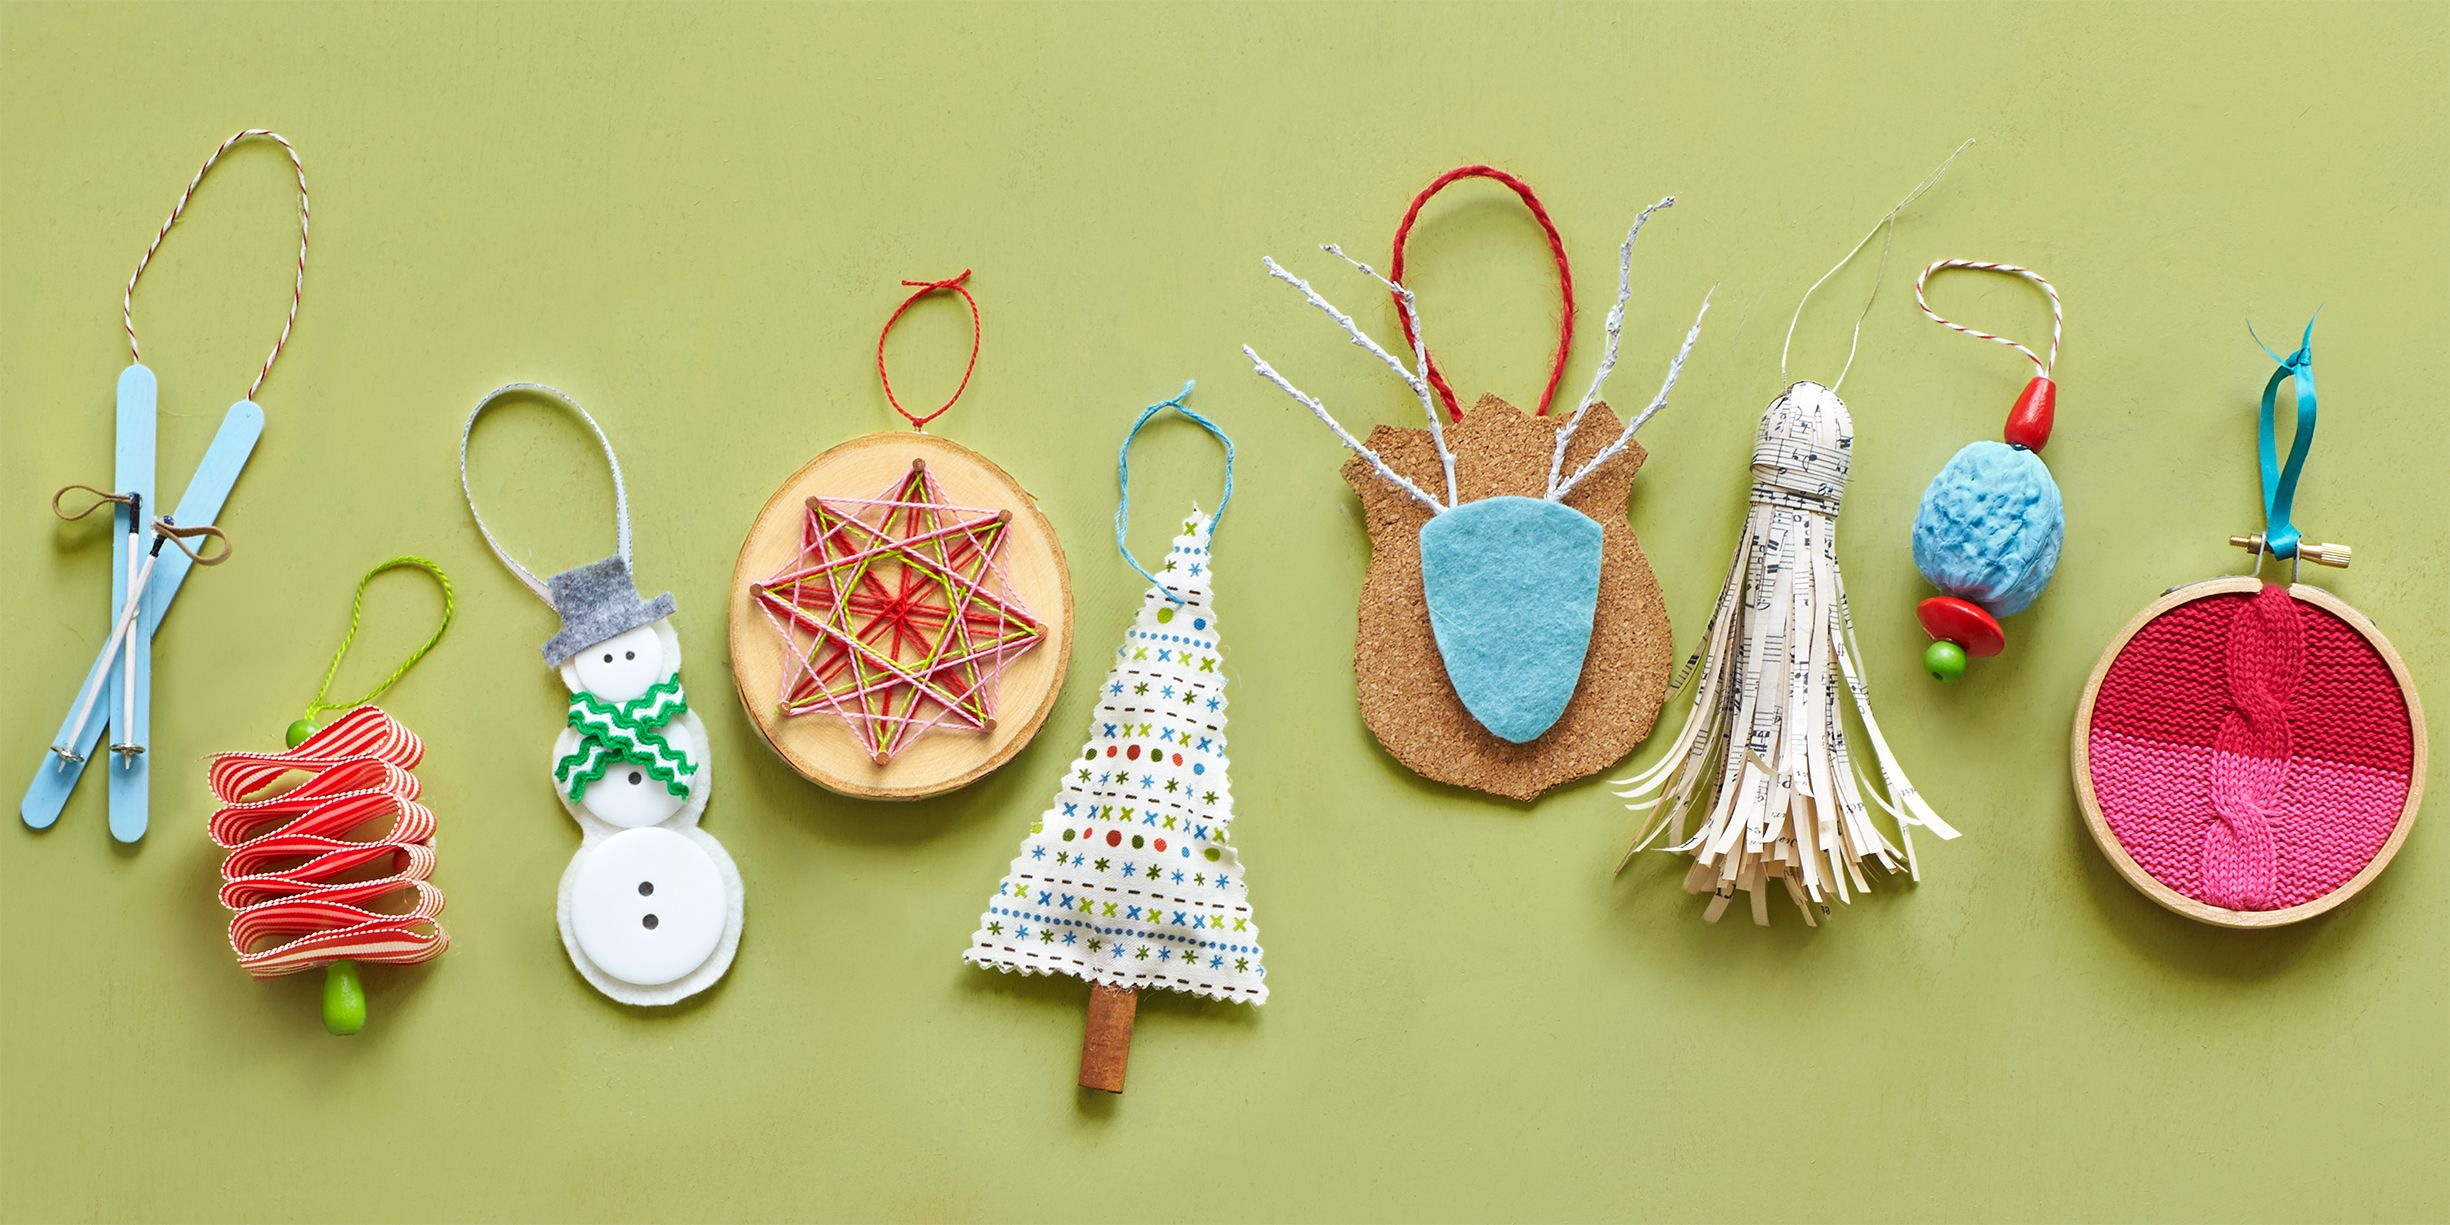 71 diy homemade christmas gifts craft ideas for christmas presents